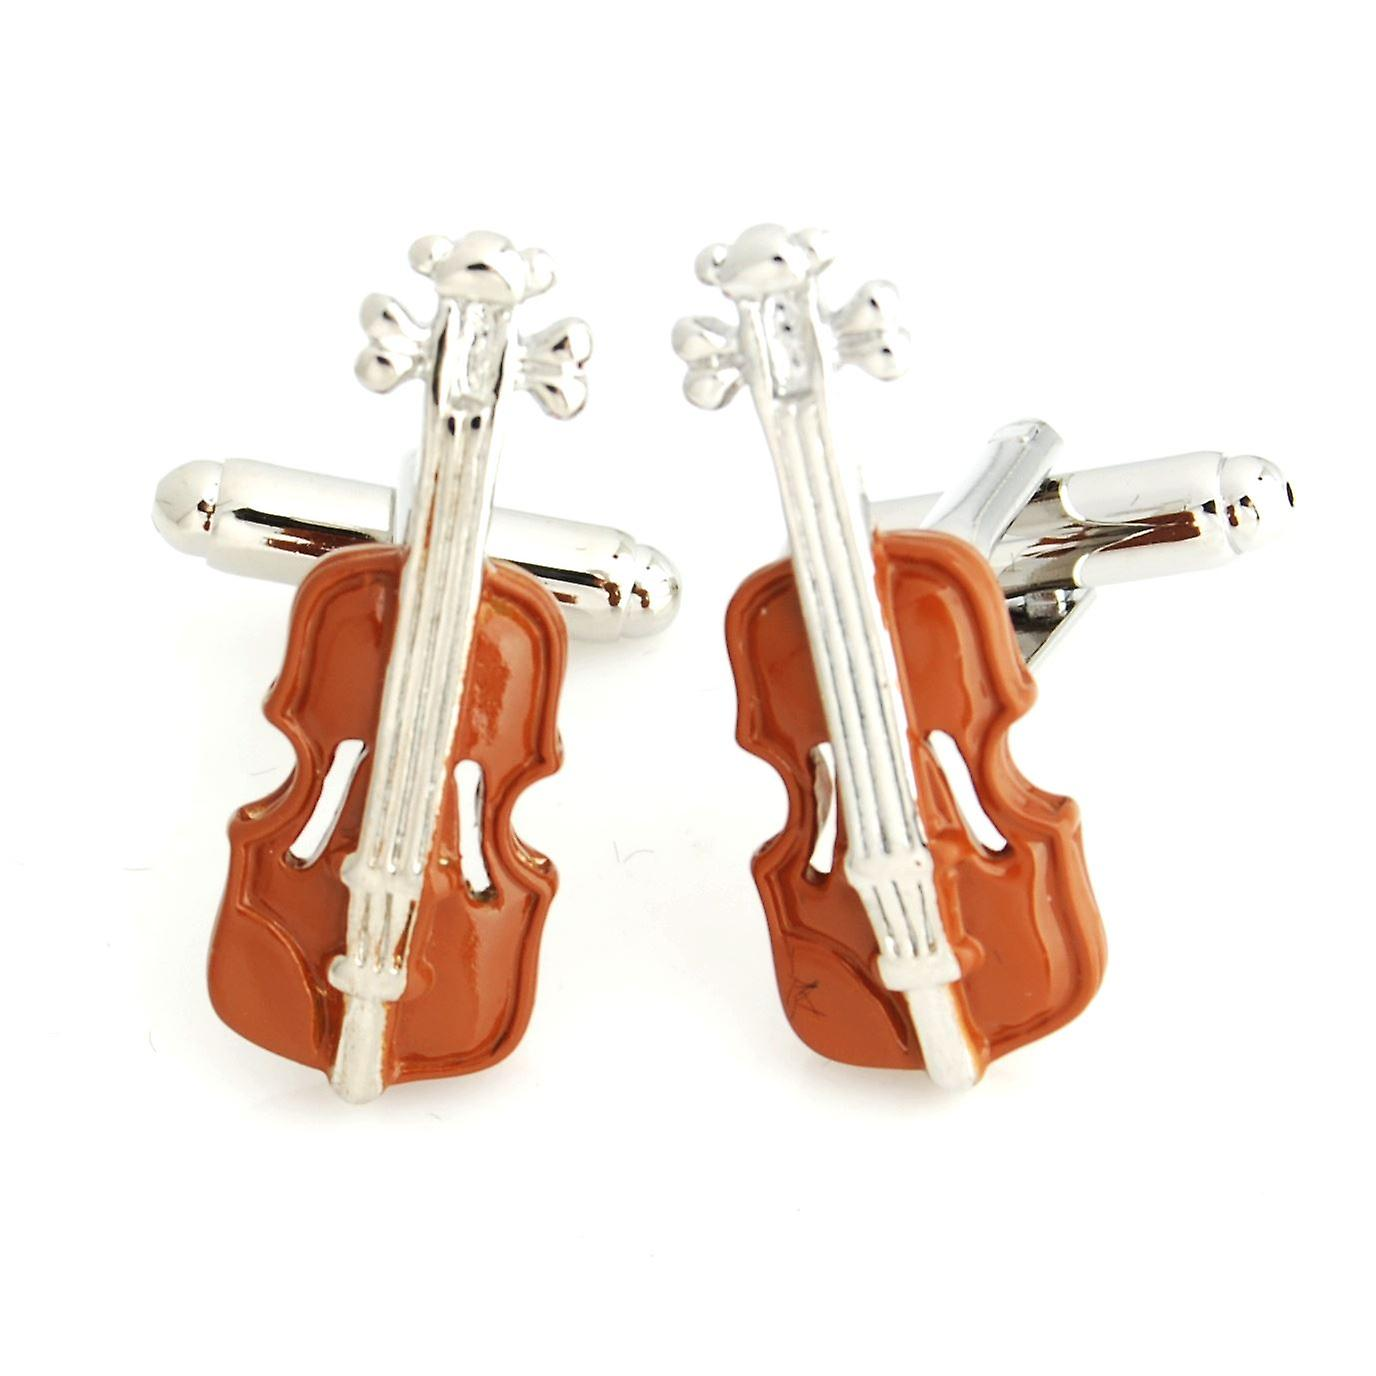 Music Brown Violin Novelty Cufflinks Wedding Gift Smart Musician Play